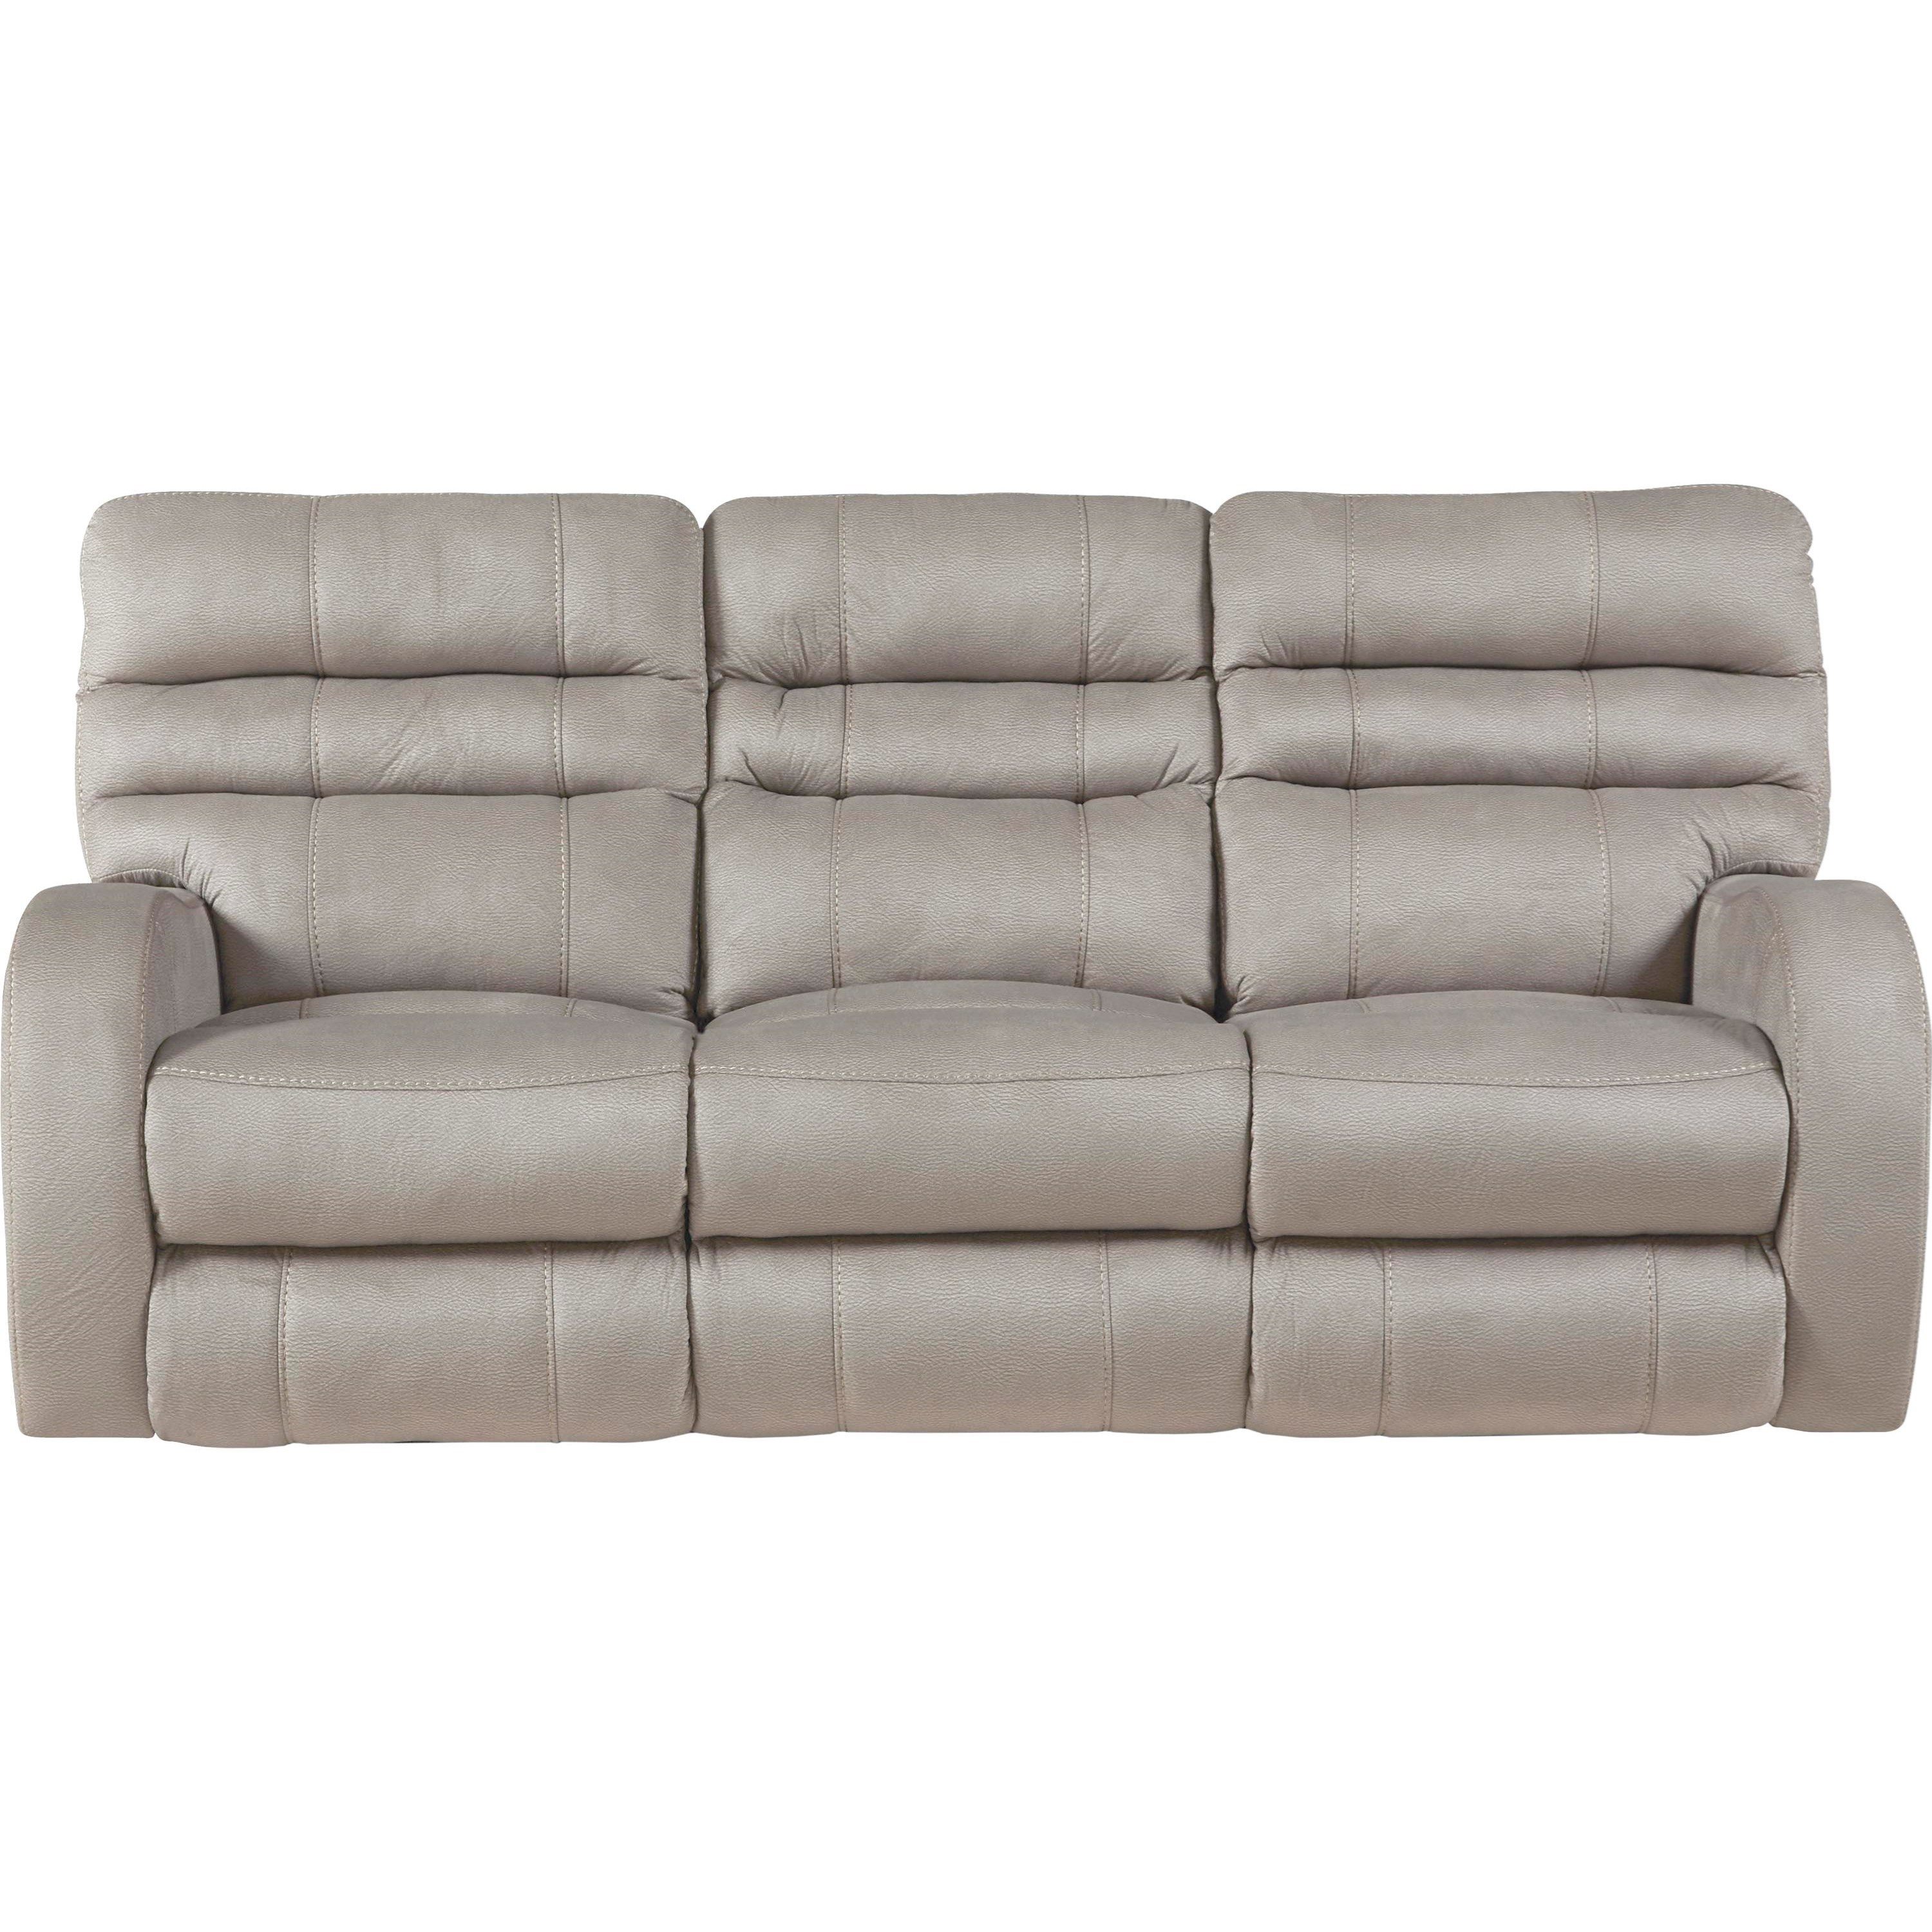 Kelsey Power Lay Flat Reclining Sofa by Catnapper at Lapeer Furniture & Mattress Center